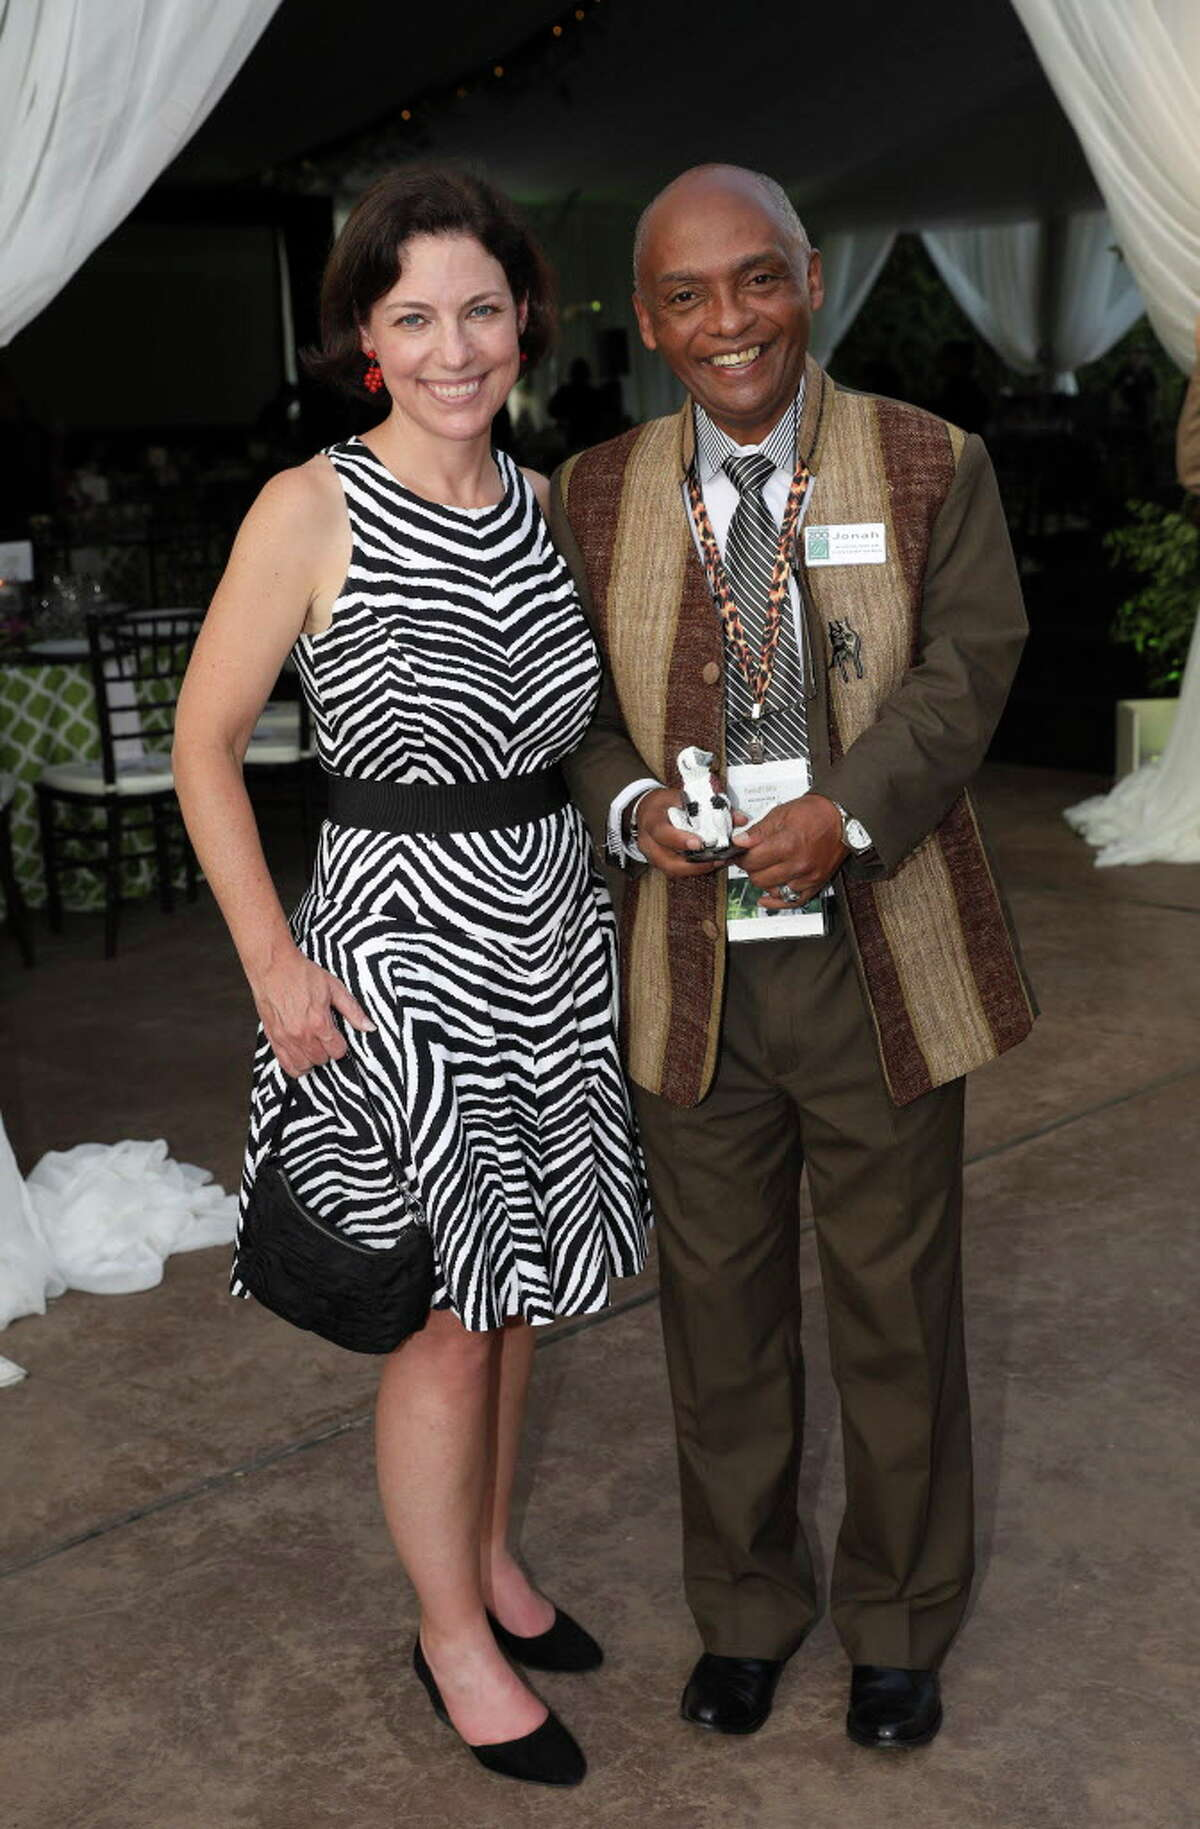 Cullen Geiselman and Dr. Jonah Ratzimbazafy, a speaker of the night, pose for a photo at Houston Zoo Gala Thursday, Oct. 12, 2017, in Houston.